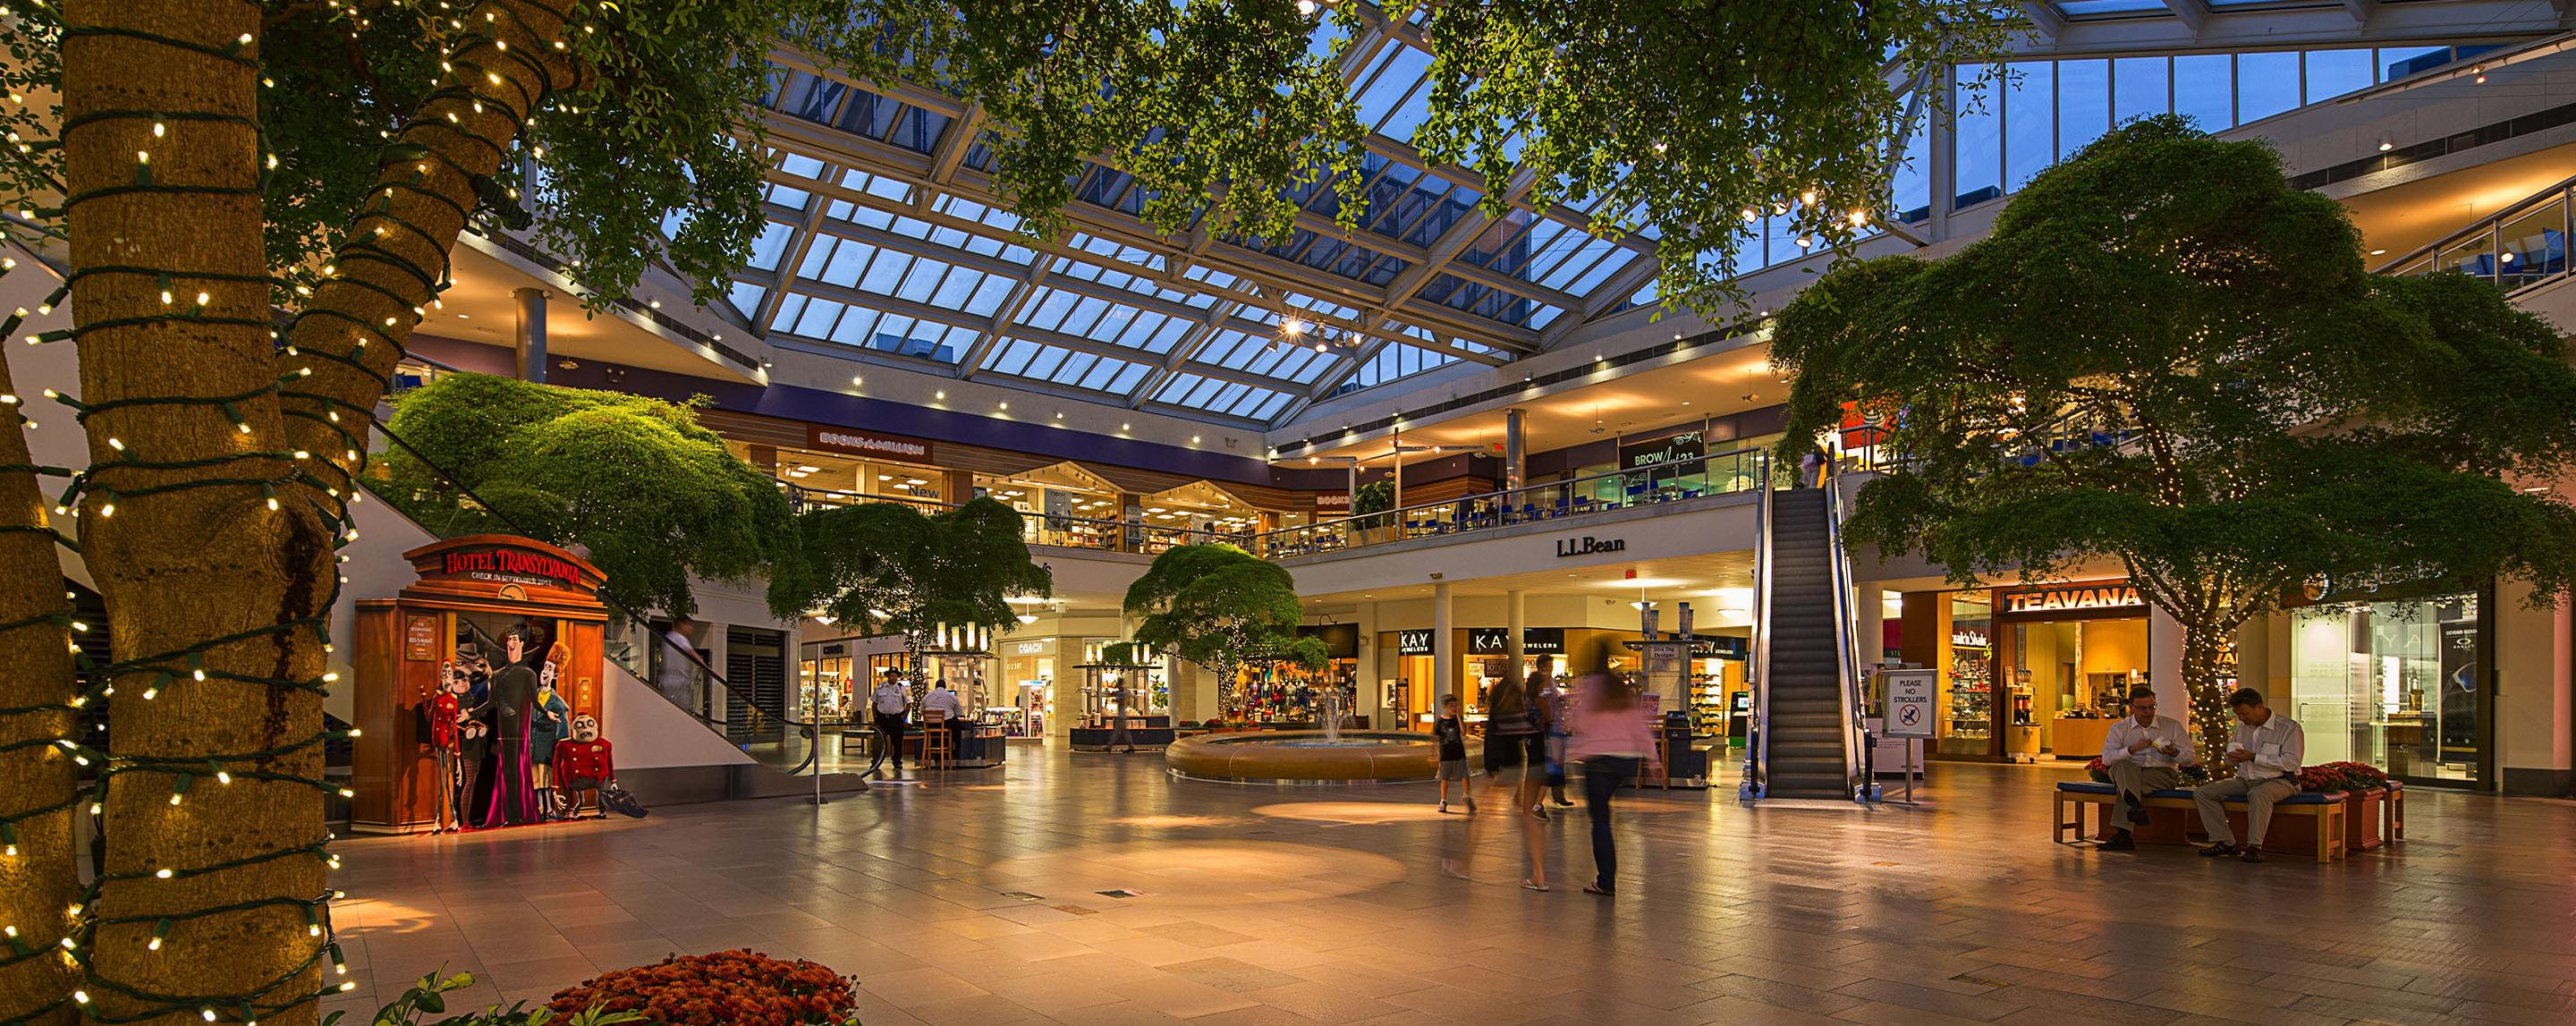 Inside Paramus Park, an open common area features a seating area decorated with string lights, trees, and plants